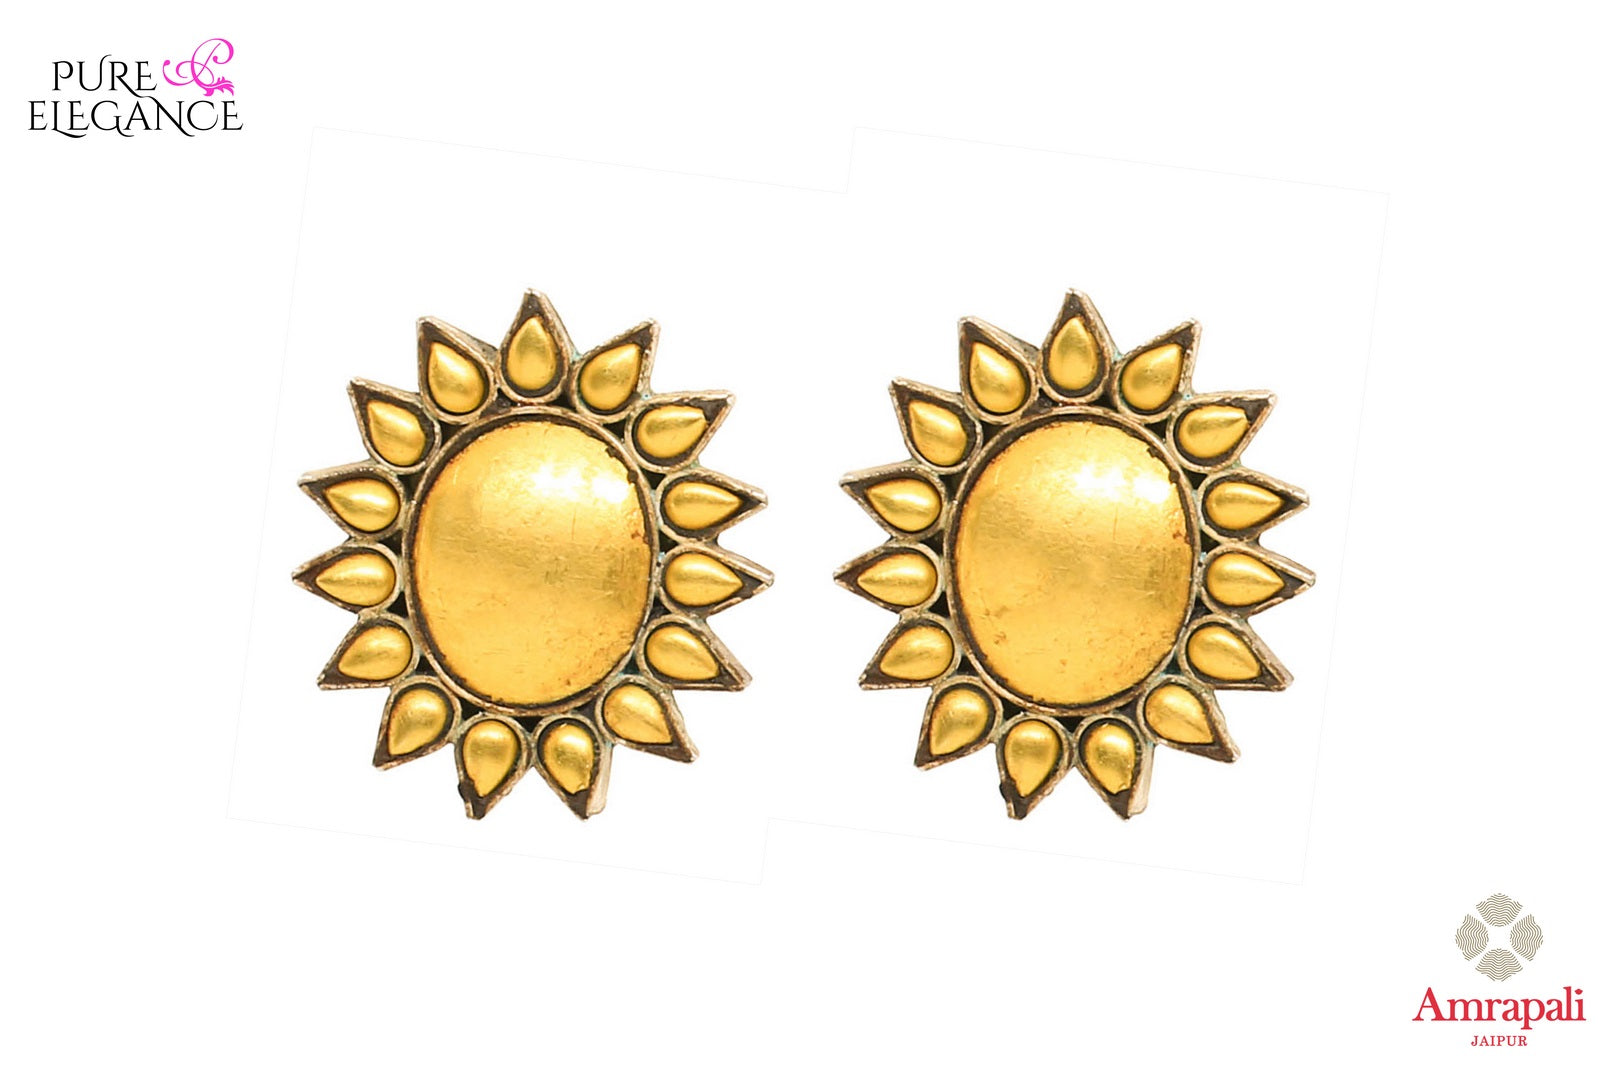 Buy elegant silver gold plated flower design stud earrings online in USA from Amrapali. If you are looking for Indian silver gold plated earrings in USA, then Pure Elegance Indian fashion store is the place for you. A whole range of exquisite of ethnic Indian jewelry is waiting for you on our shelves, you can also opt to shop online.-front view